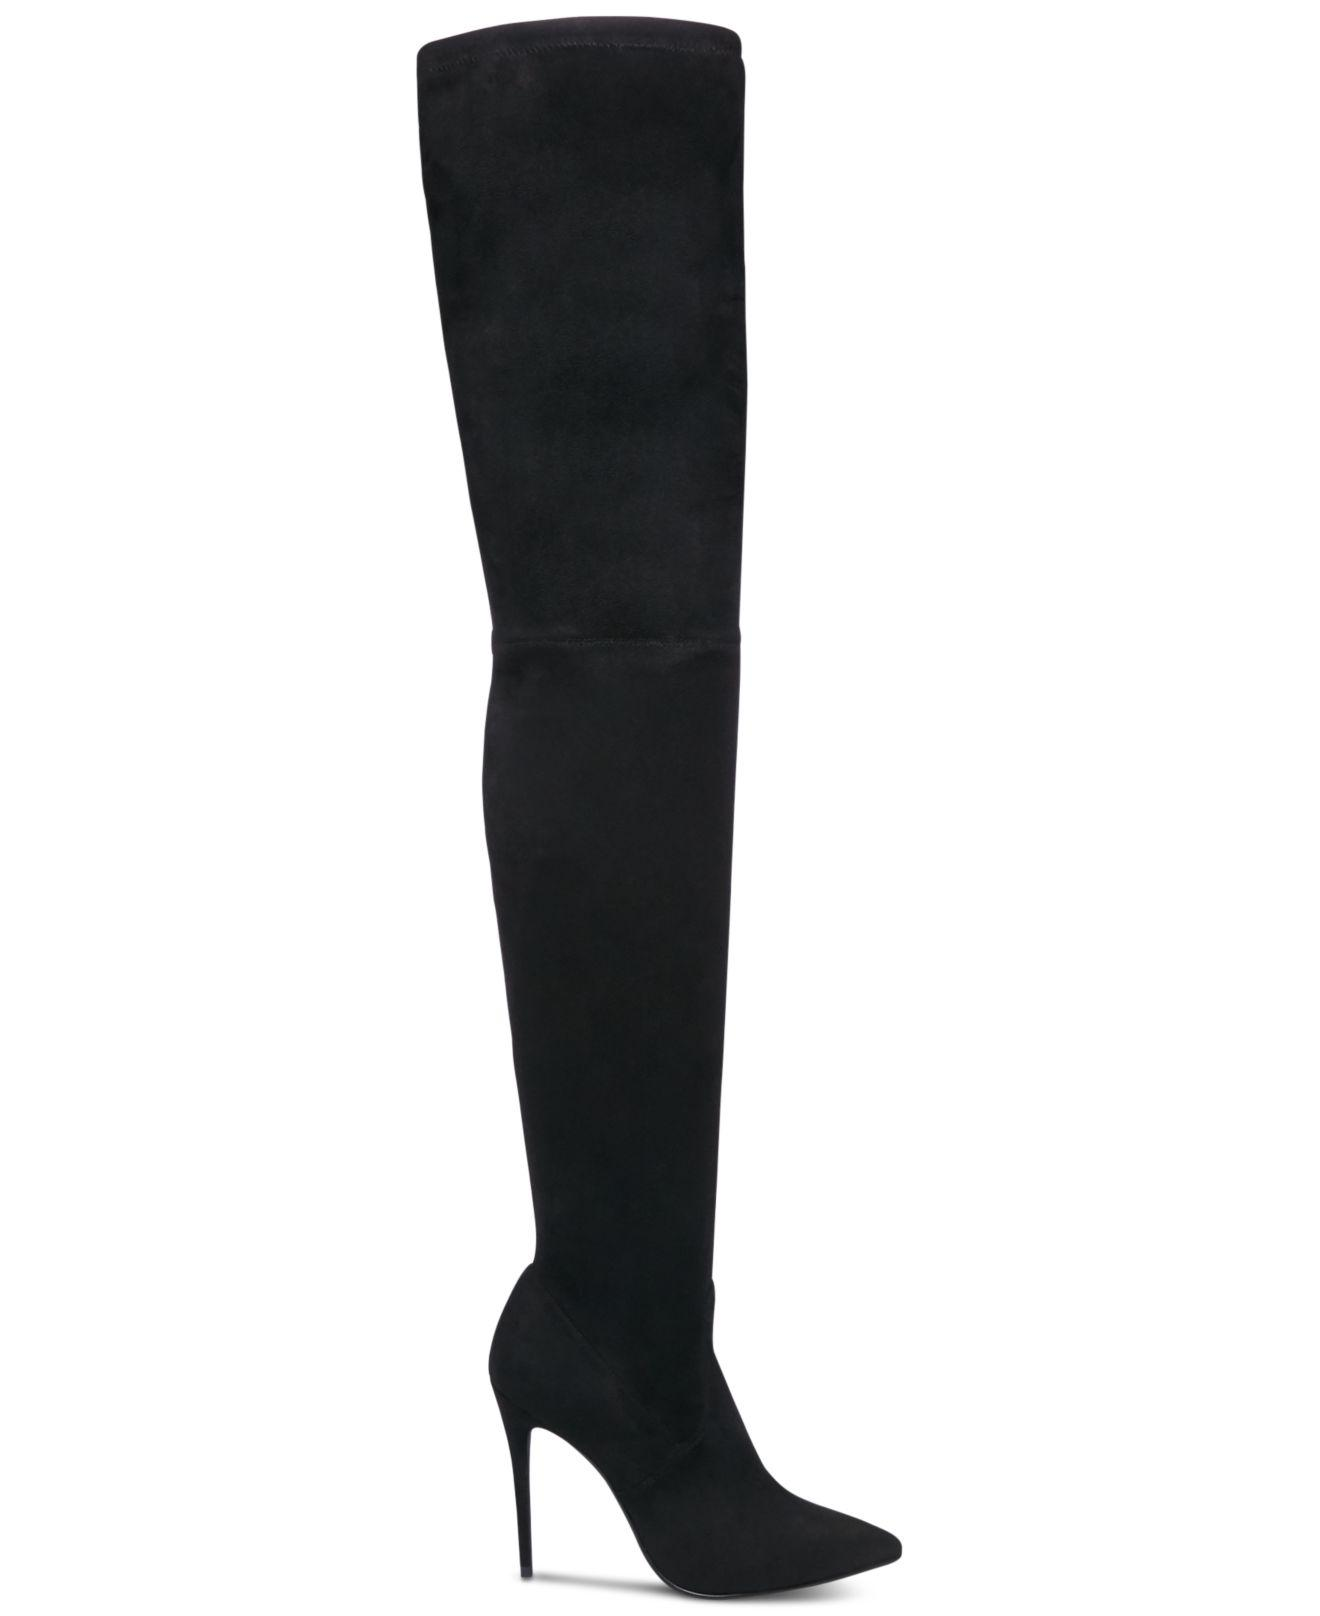 44249d1c984 Women's Black Dominique Over-the-knee Stretch Boots